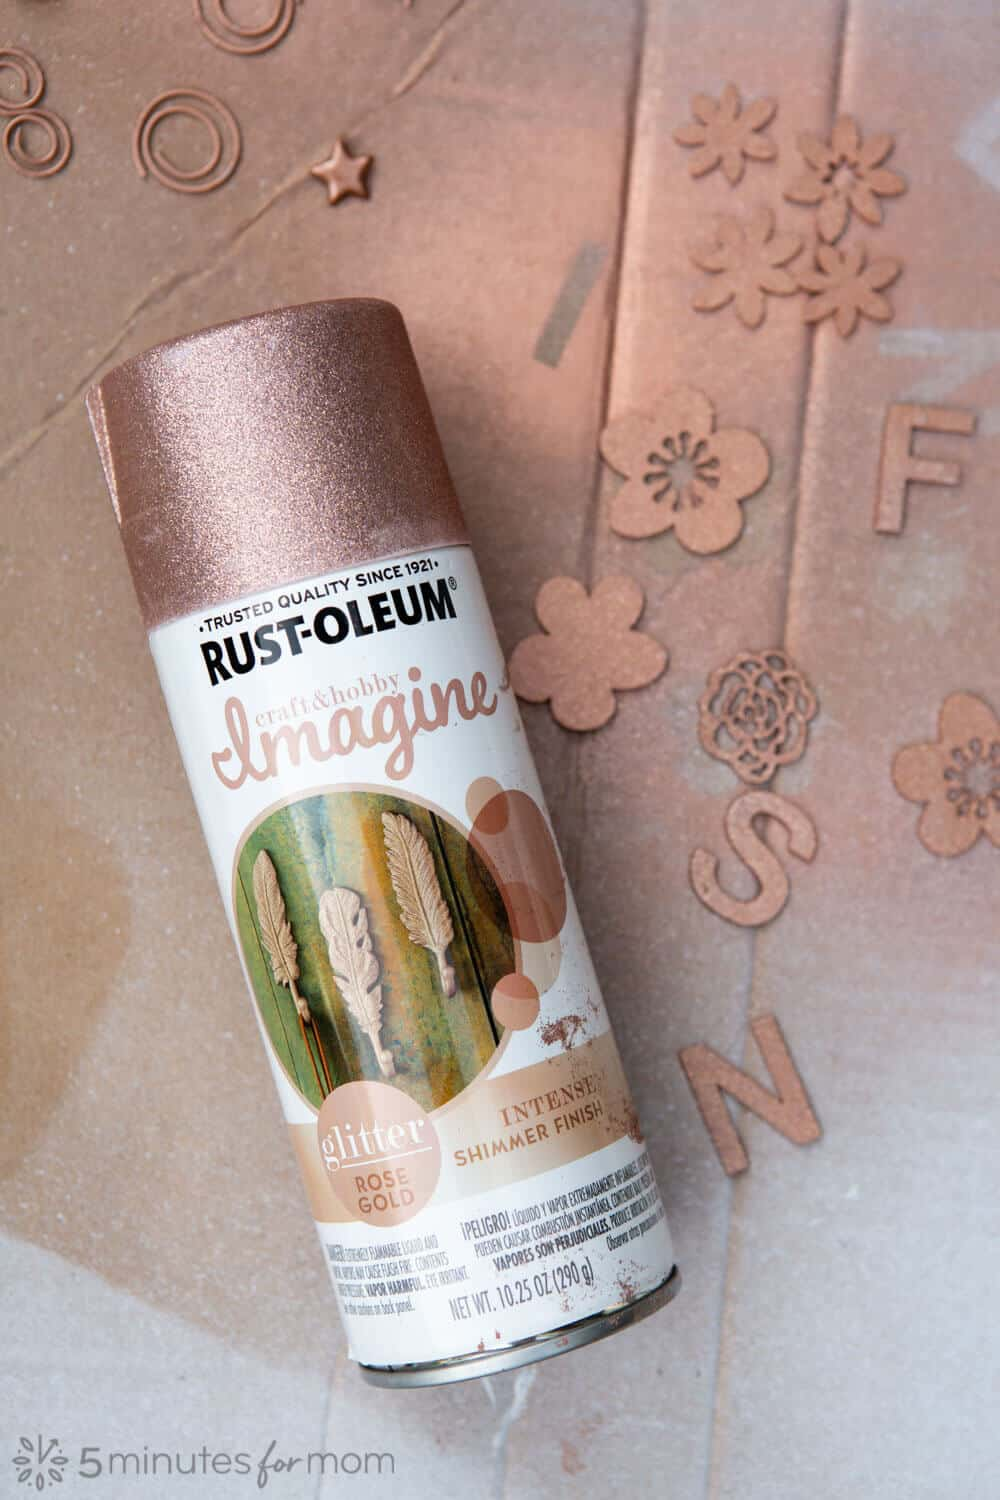 Rust-Oleum Glitter Spray Paint